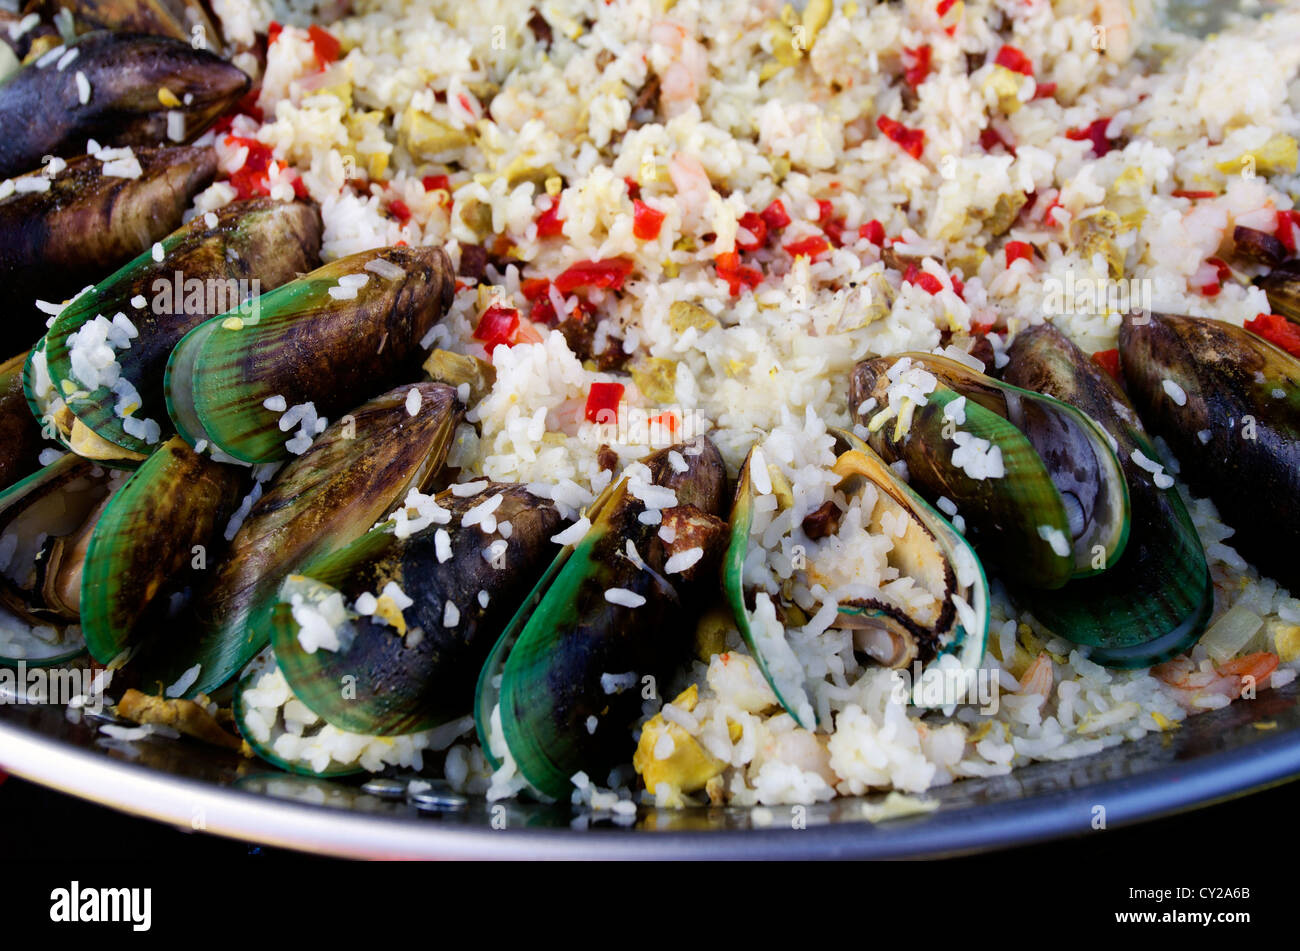 Cooked Oysters with vegetables and oriental fried white rice on display in a far eastern restaurant. - Stock Image